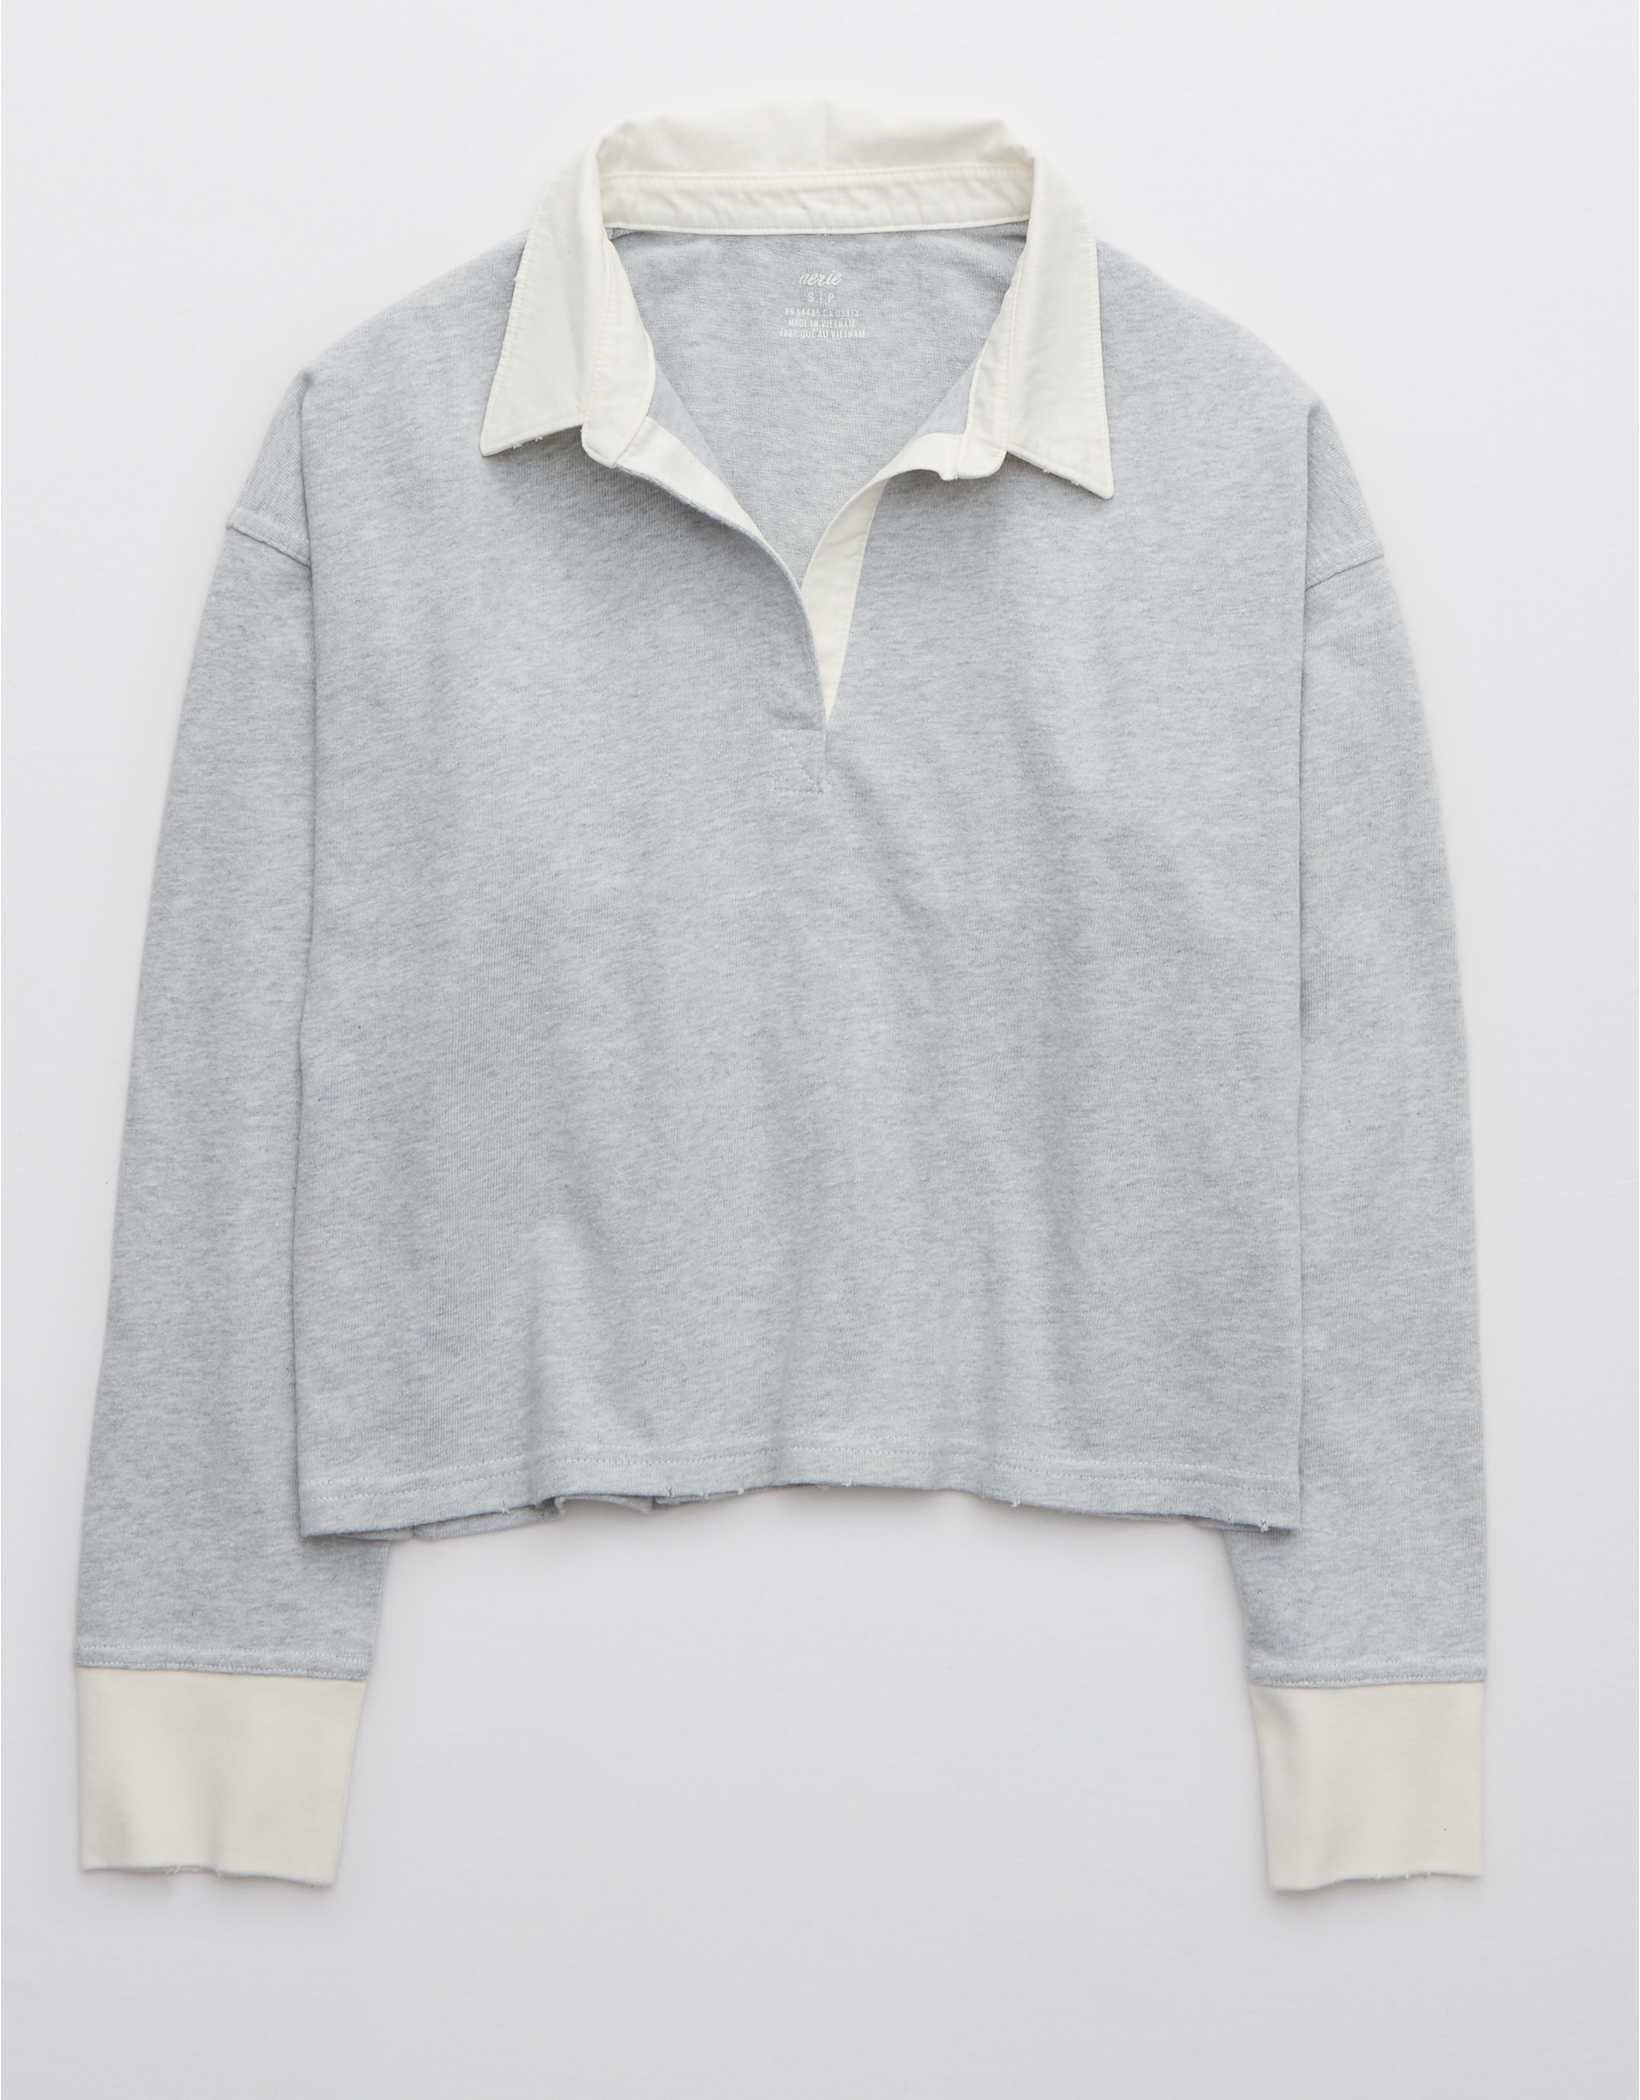 Aerie Long Sleeve Cropped Polo T-Shirt